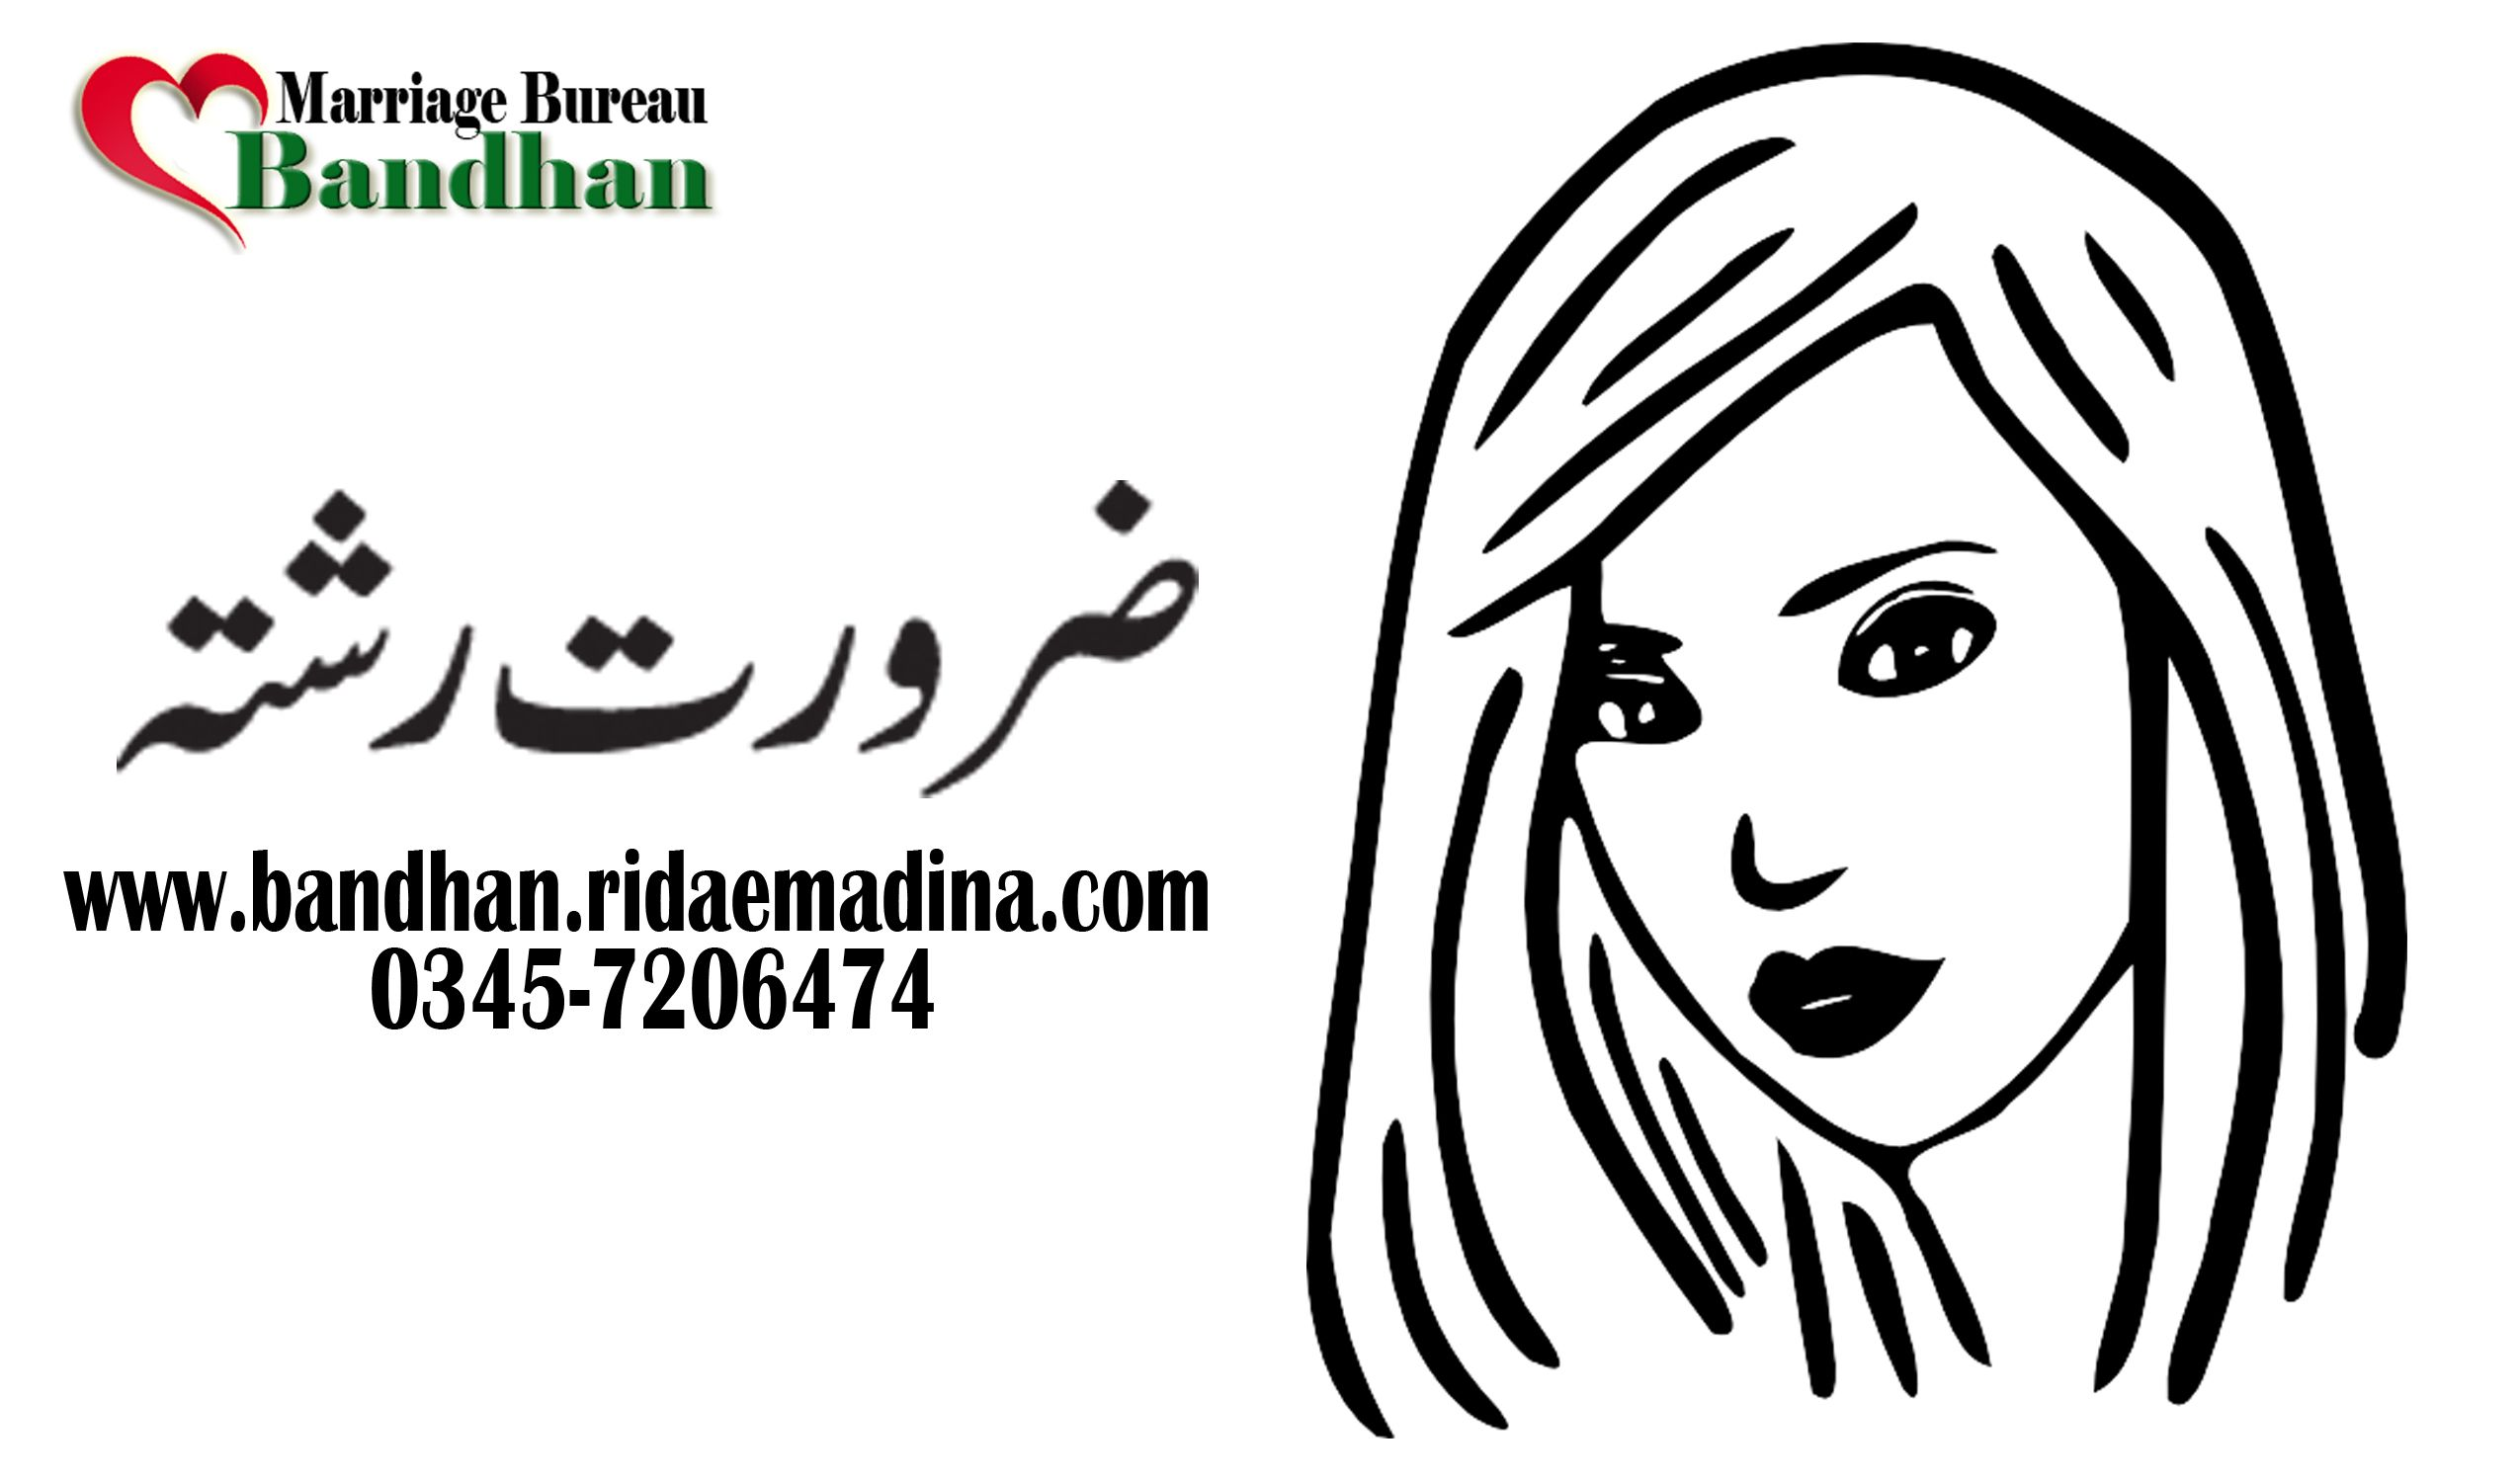 Pin by Rida-e-Madina on Marriage Bureau in Lahore | Marriage bureau